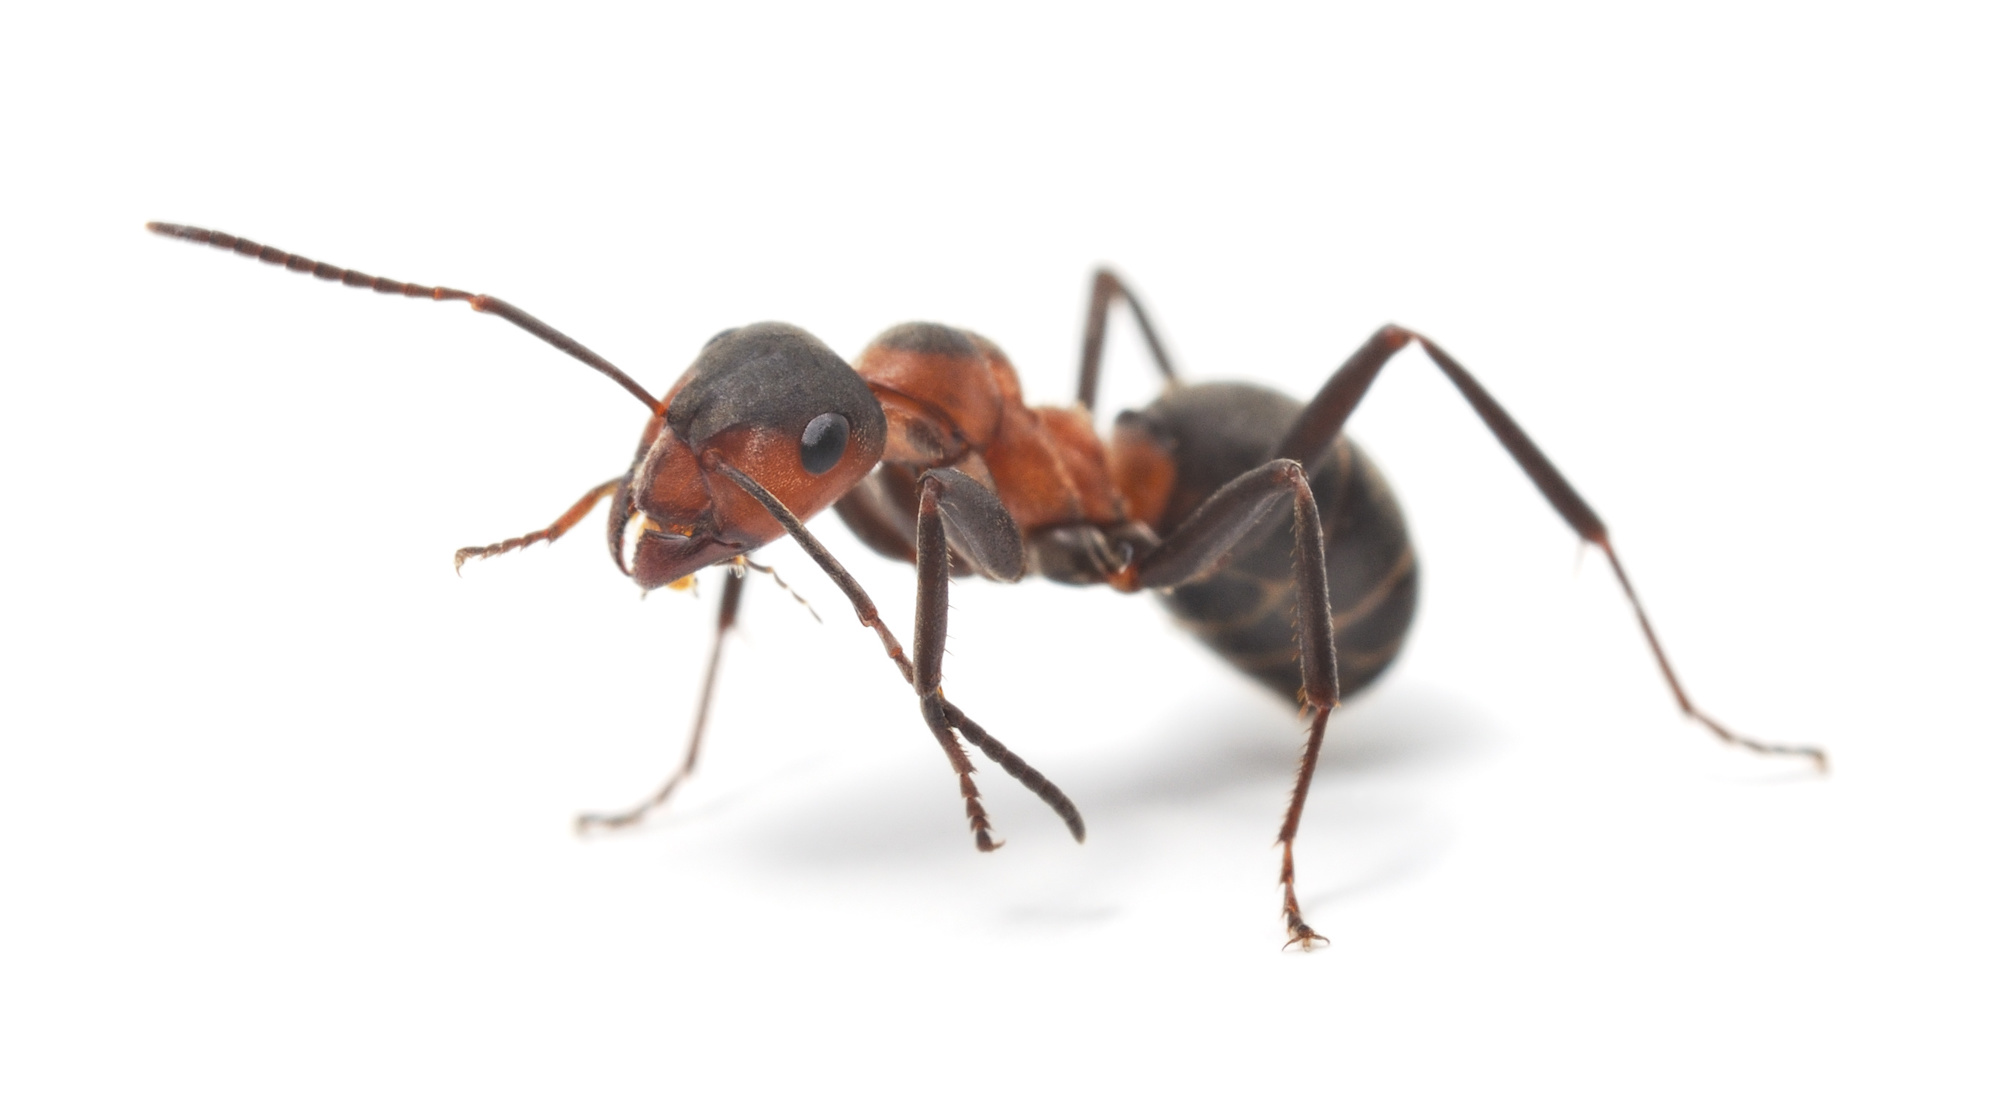 Ant pest control in Bakersfield, Bakersfield pest control